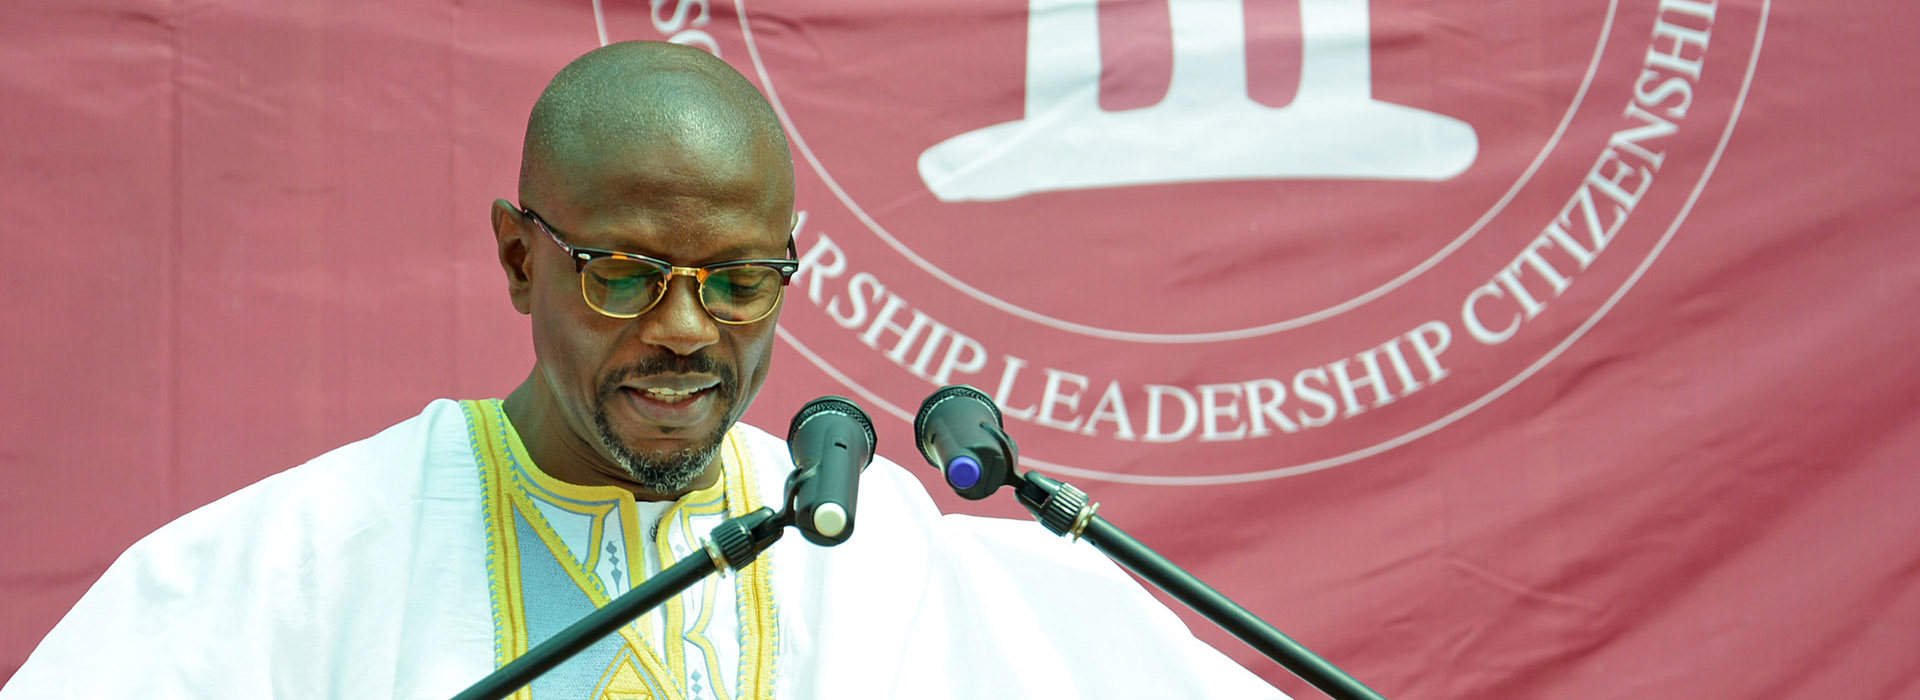 <p>Kwaku Sakyi-Addo makes a strong call to Class of 2014</p>